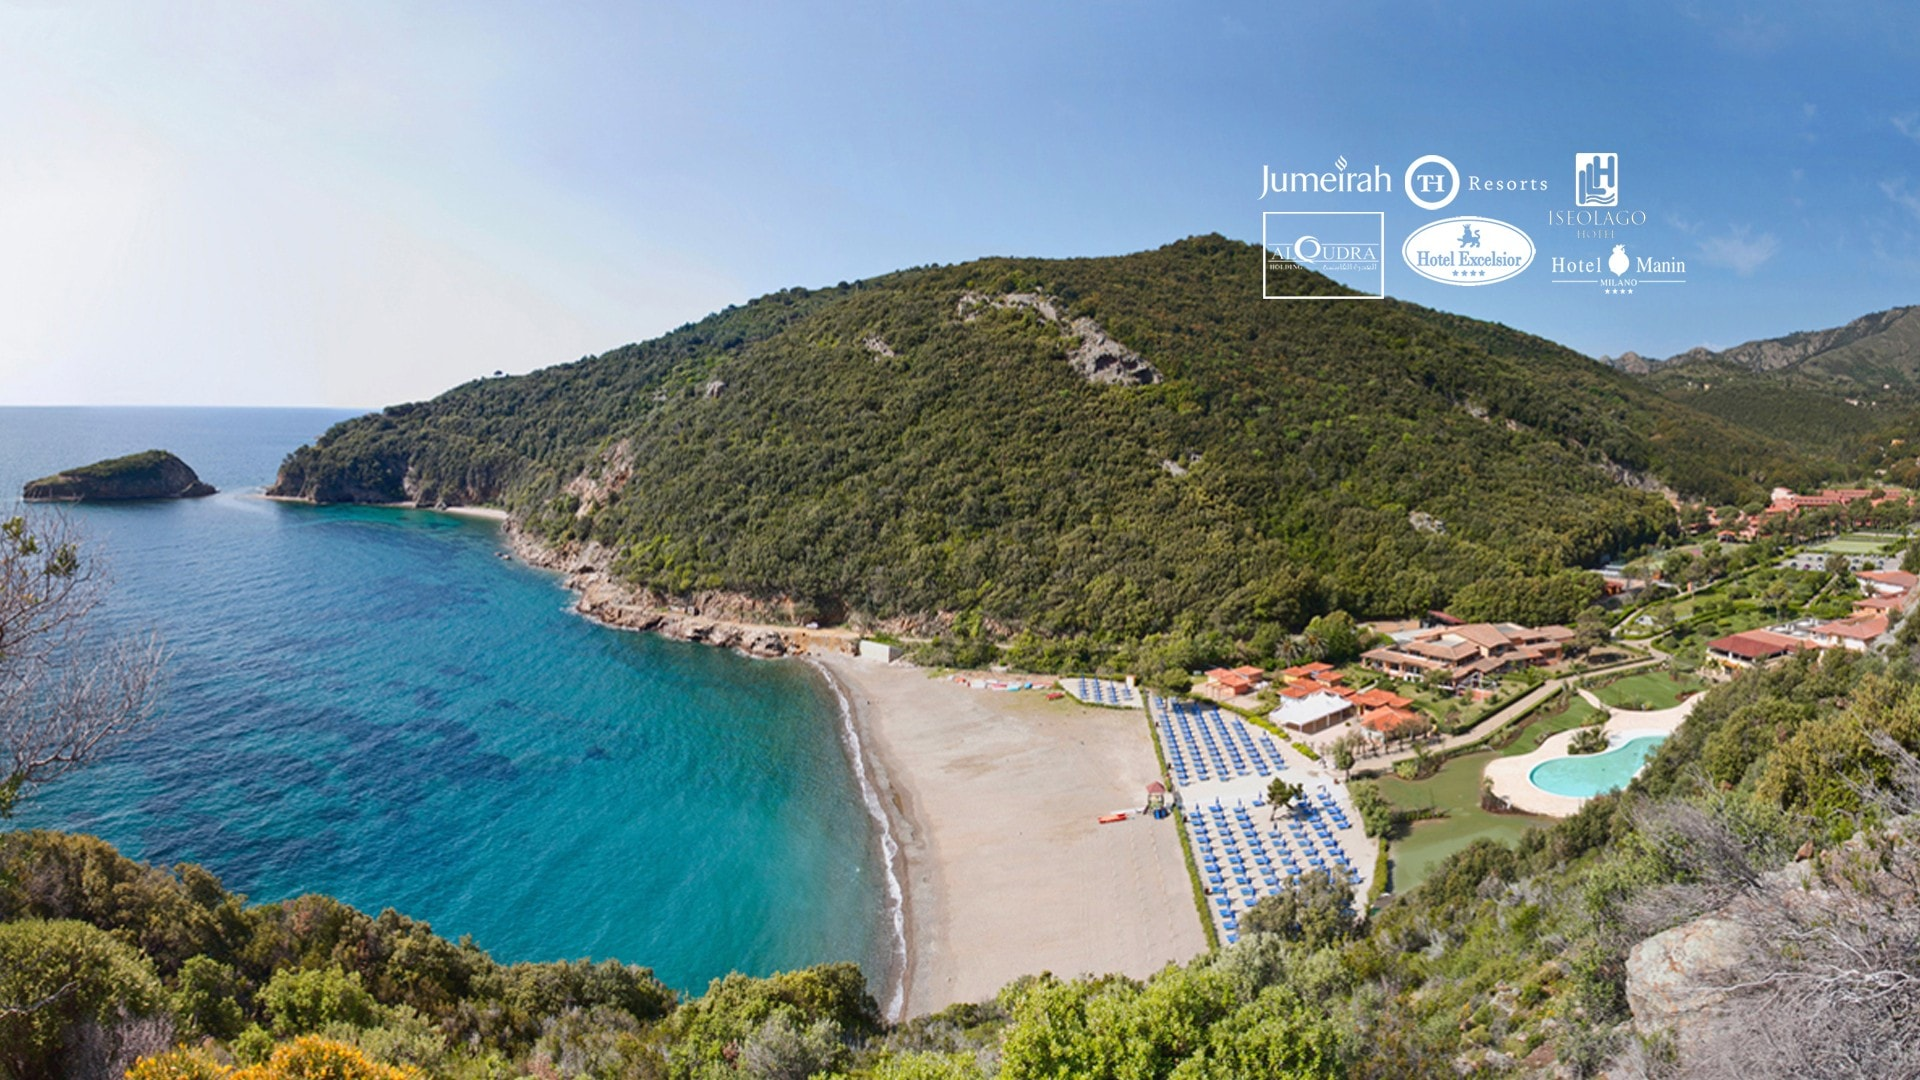 WaterFront Resort - Elba Island IT